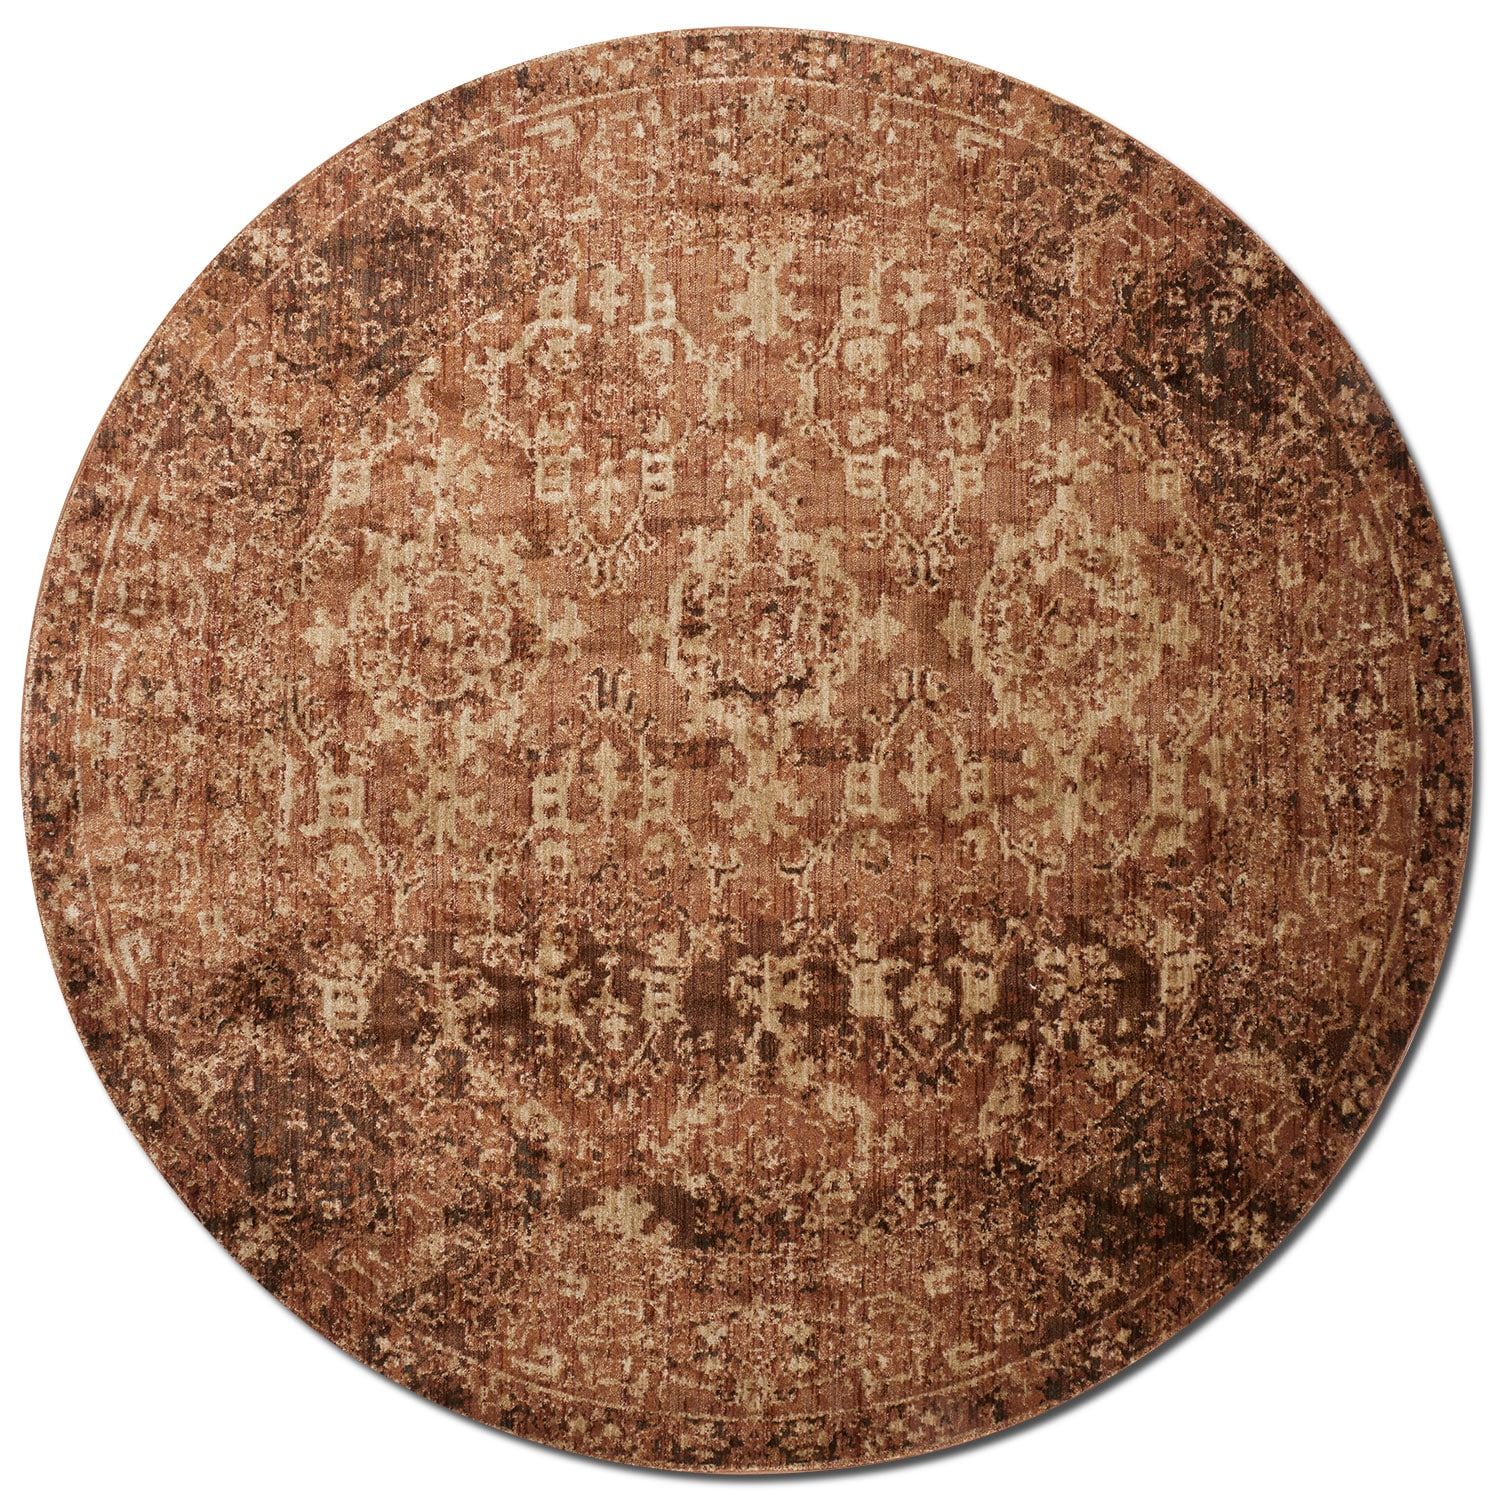 Rugs - Kivi 10' Round Rug - Sand and Copper